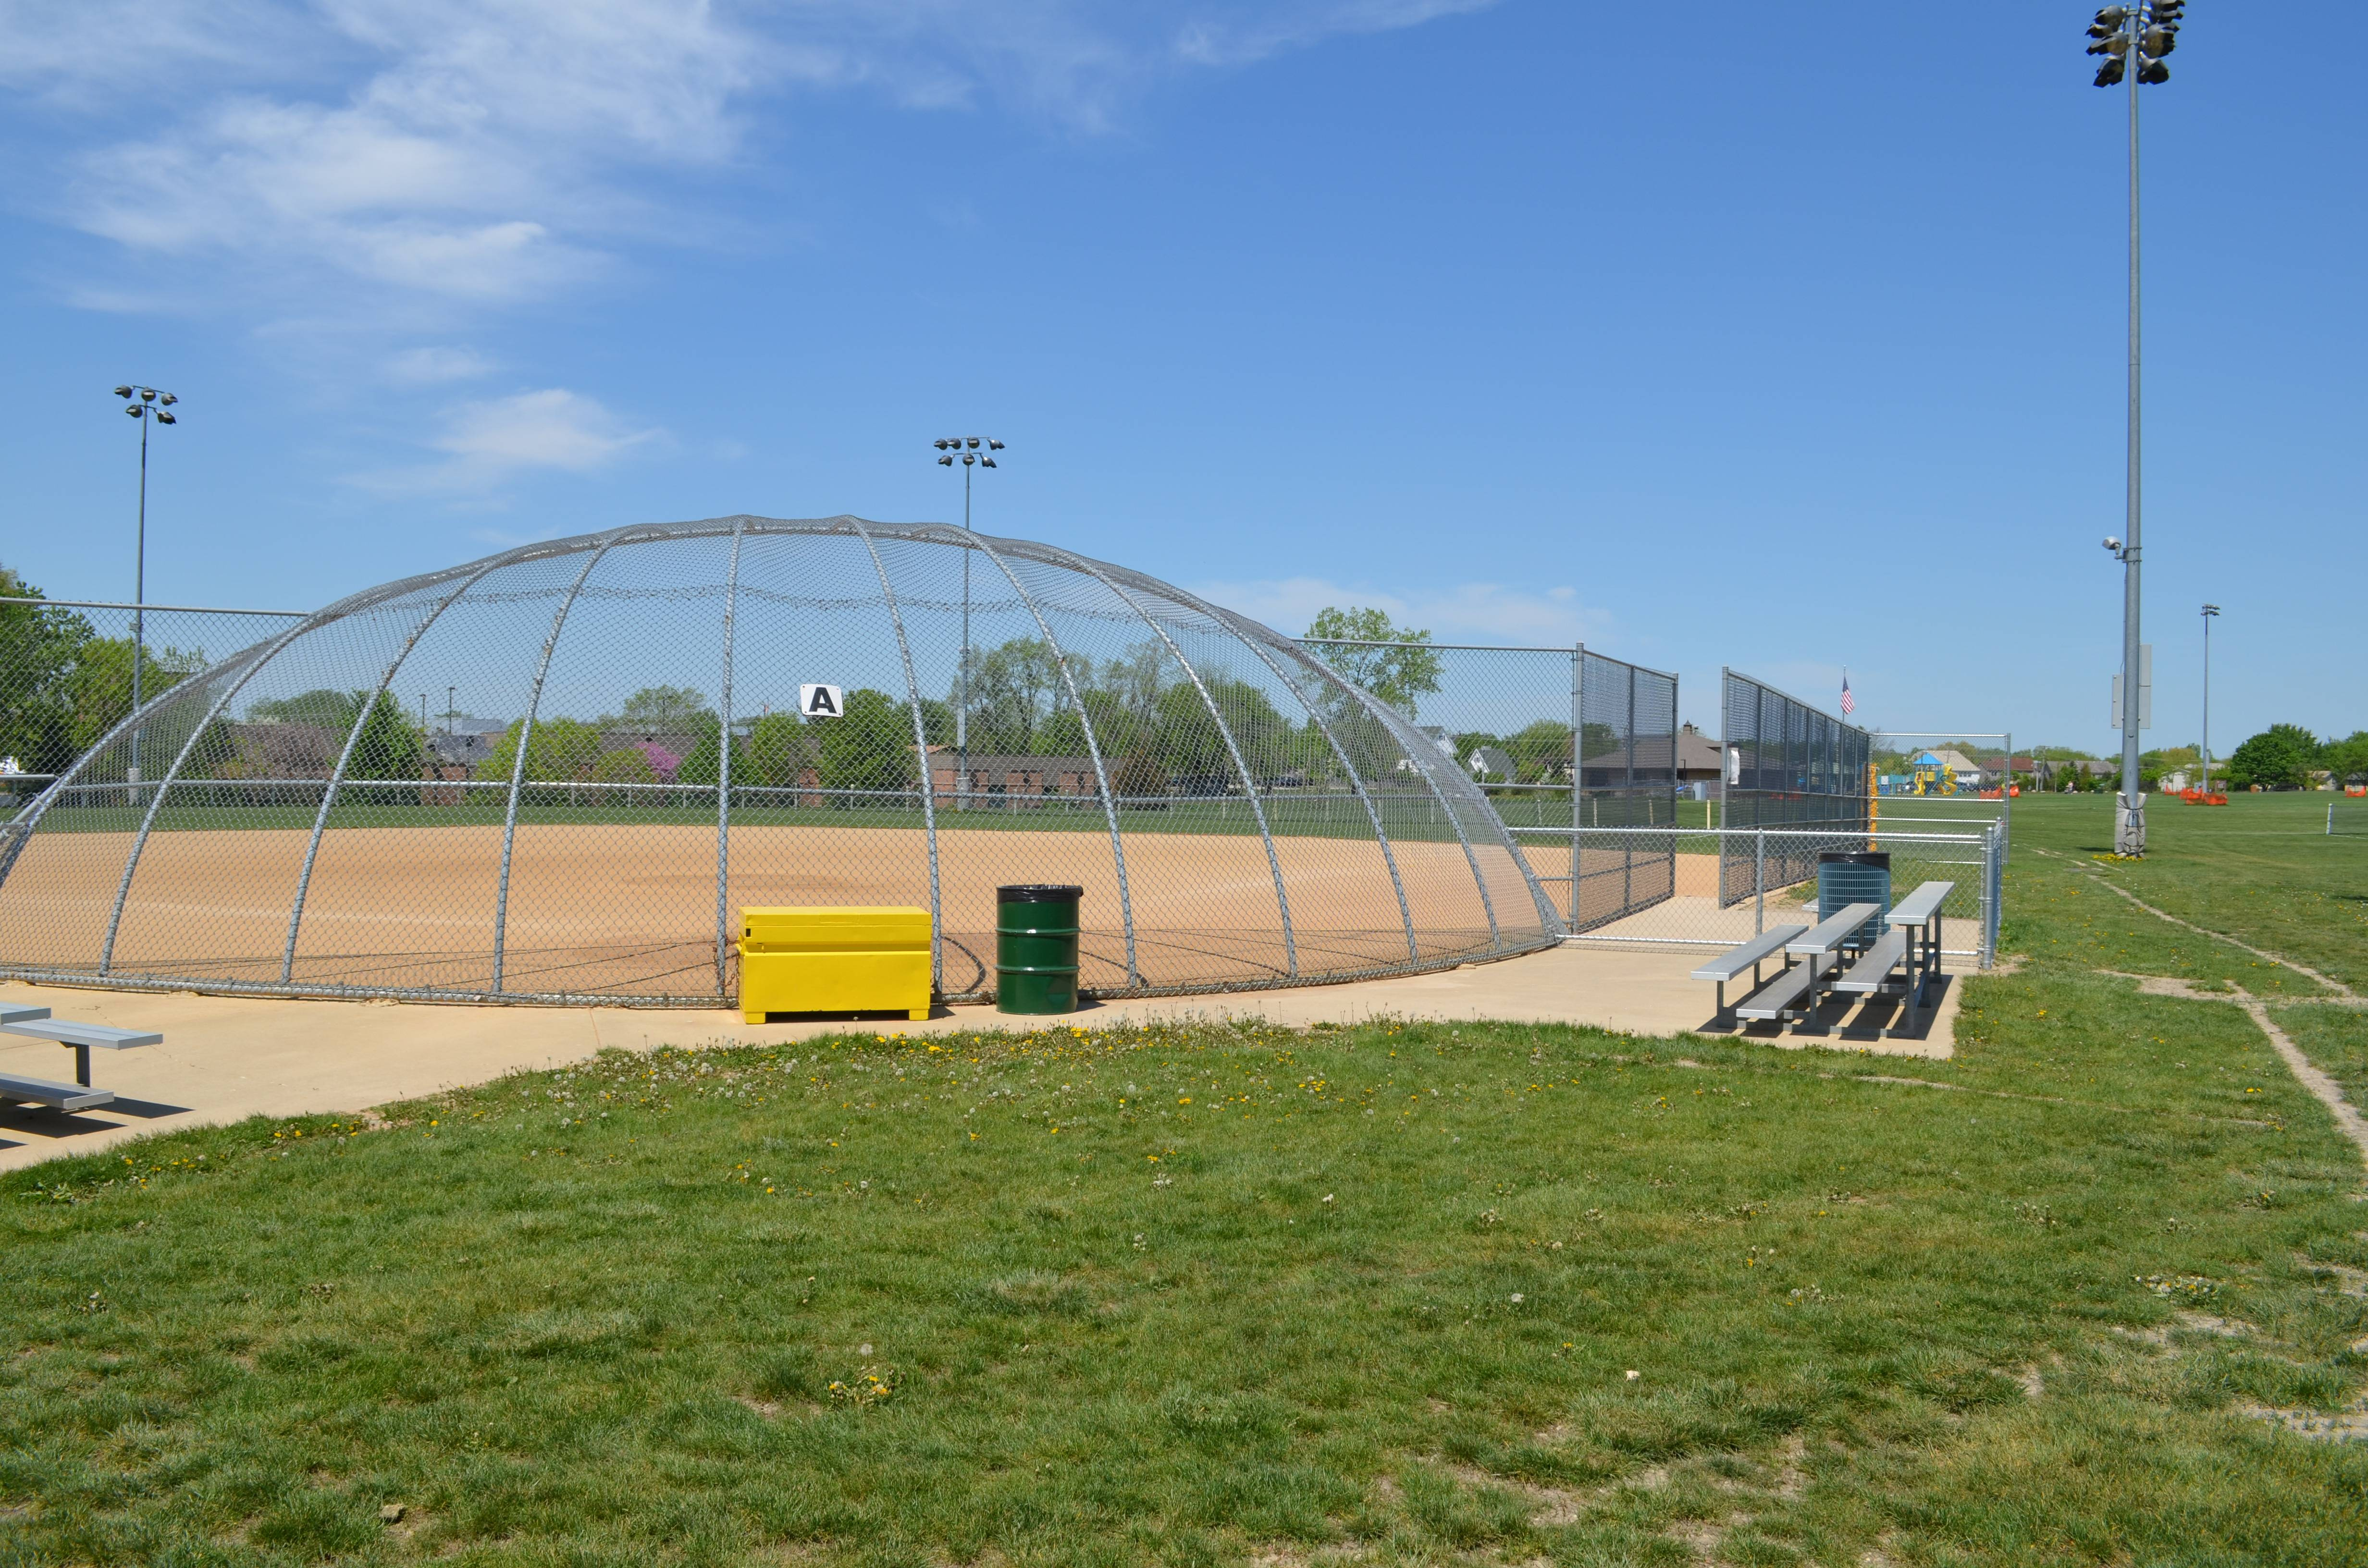 Hamilton is home to the Ron Gbur Sports Fields.